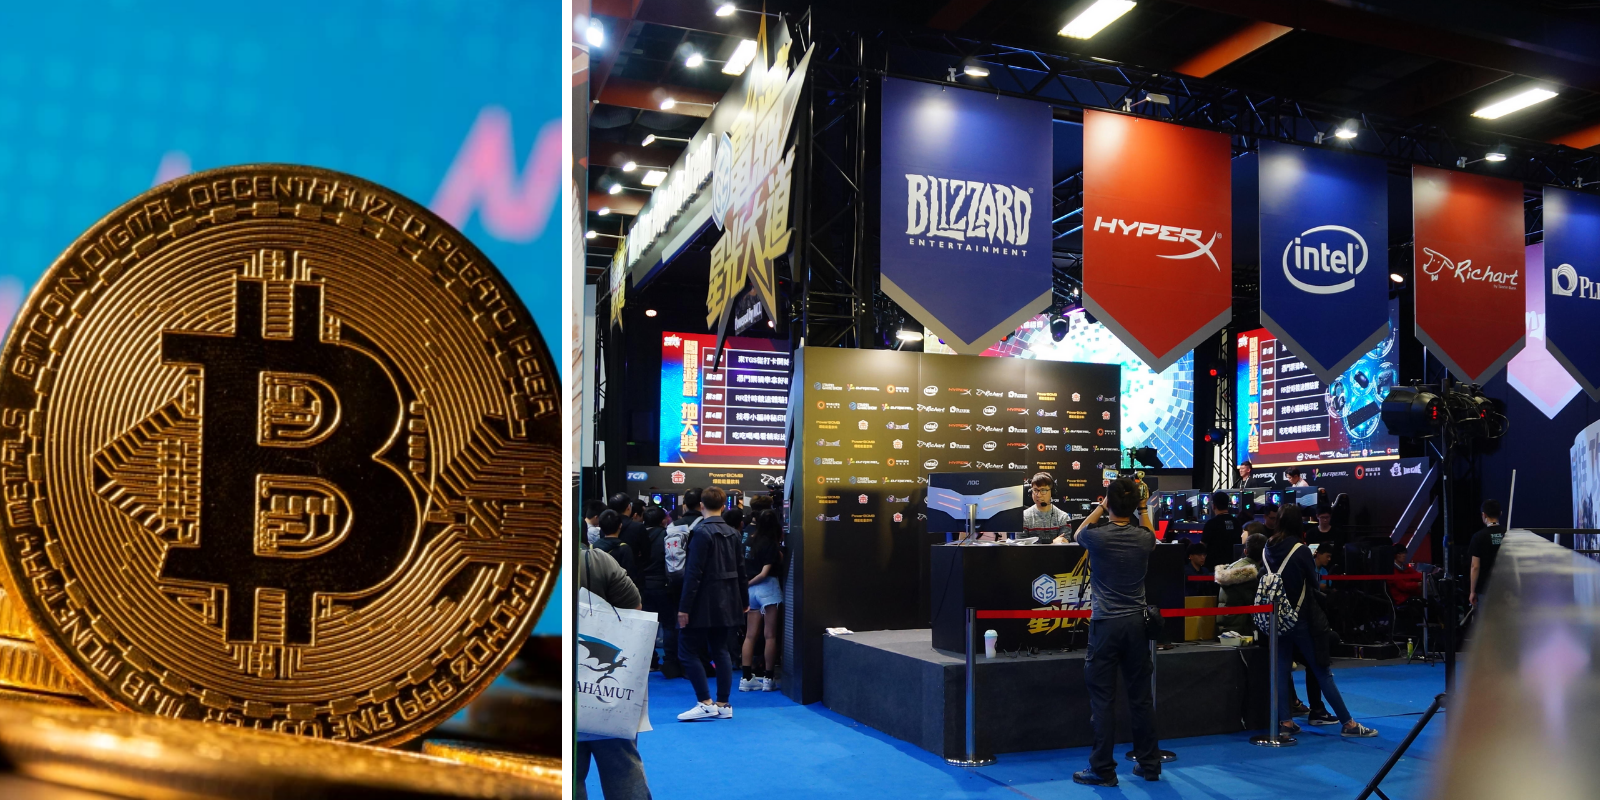 Sony files patent for esports betting platform using Bitcoin